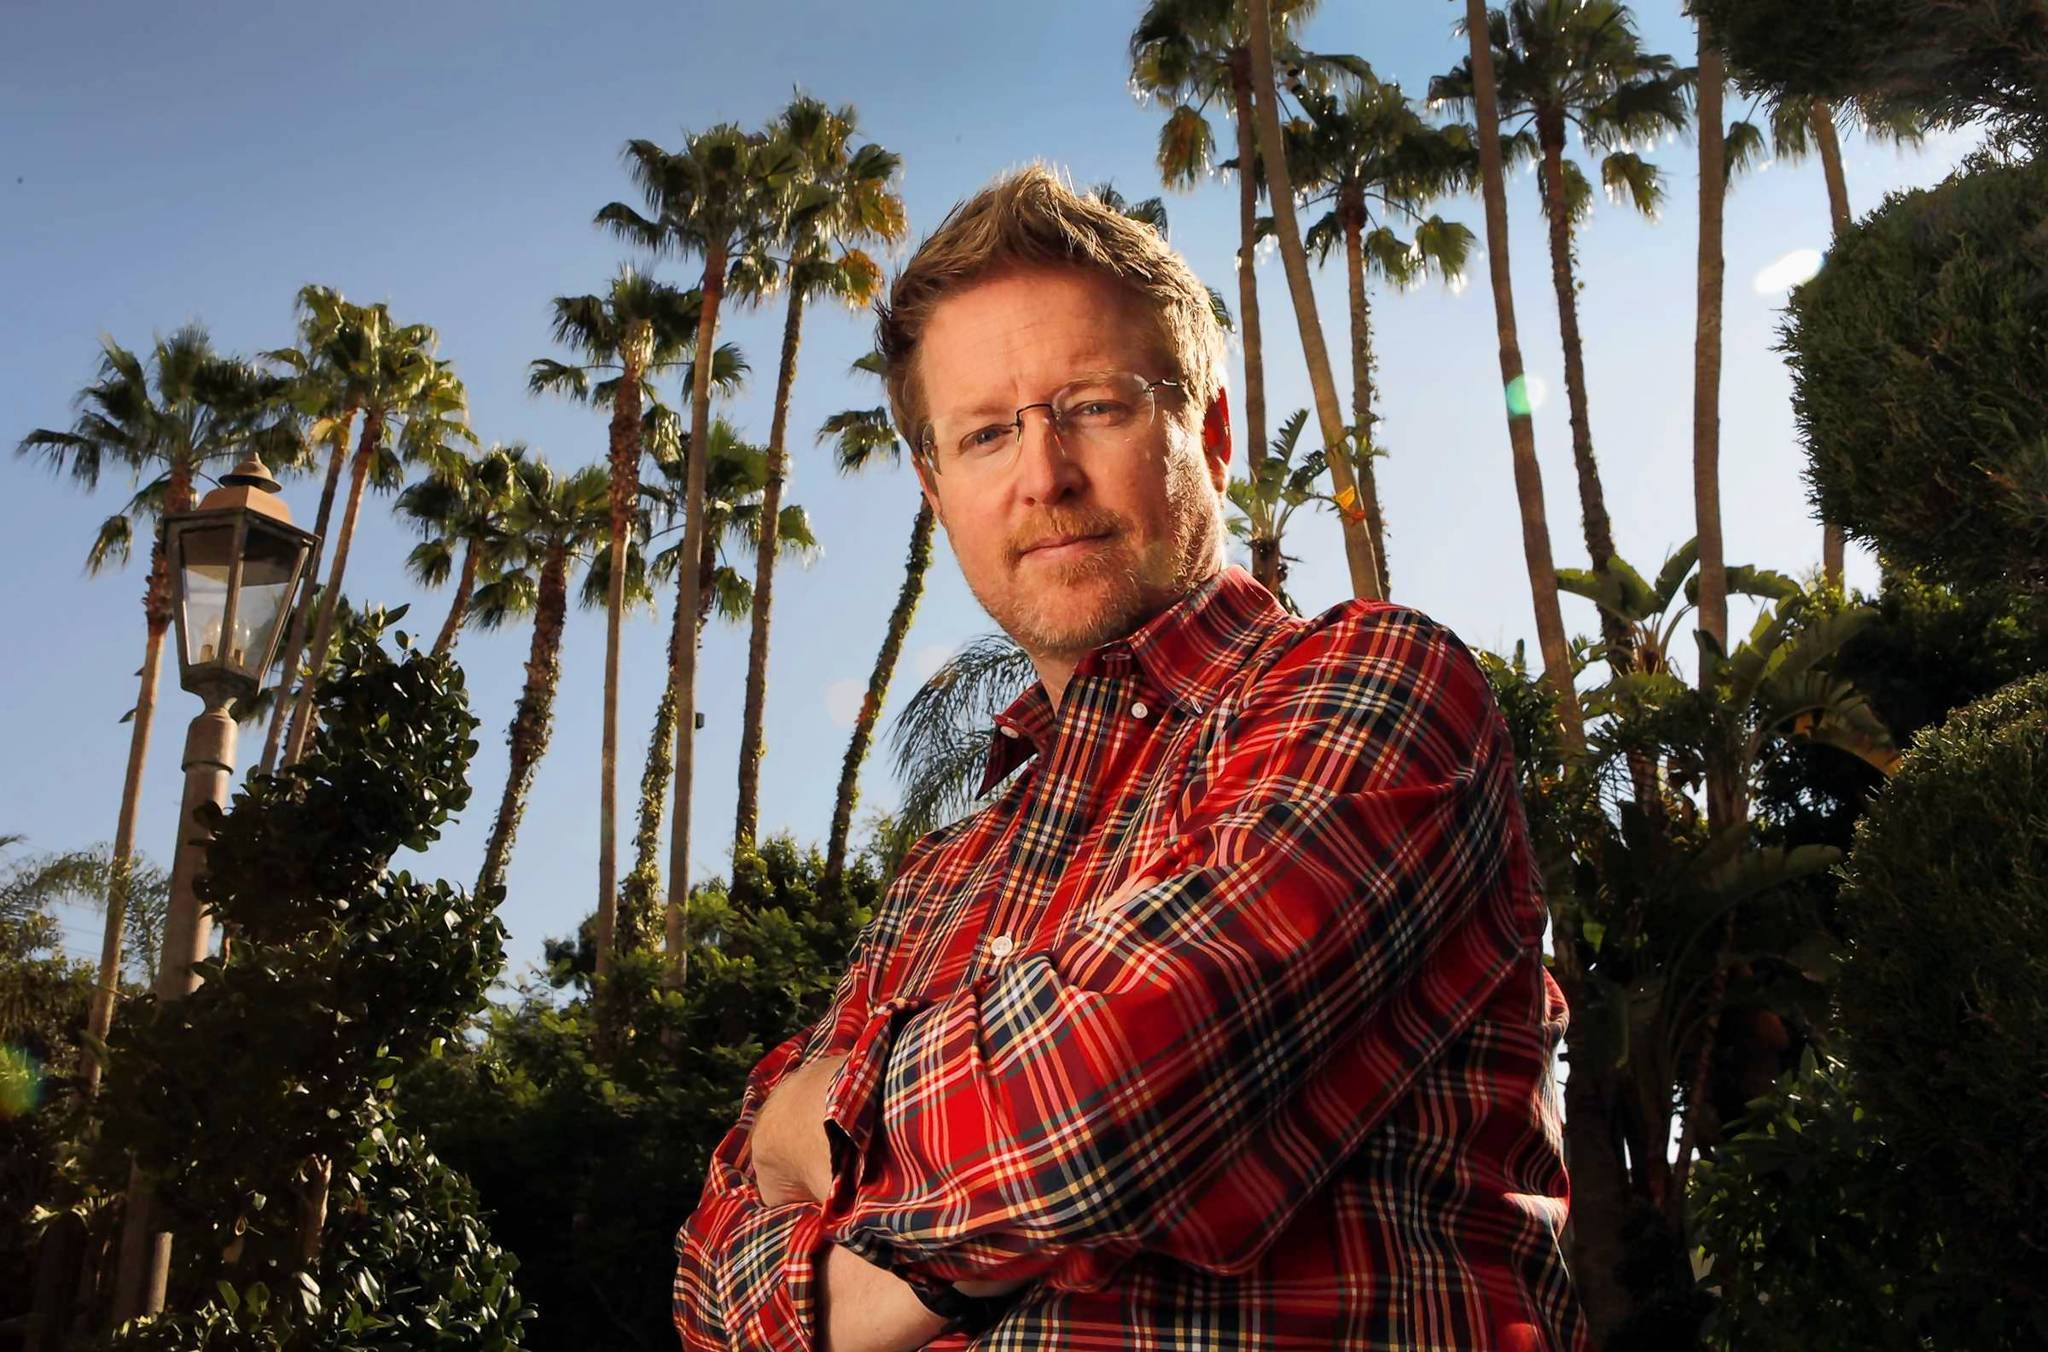 """John Carter's"" Andrew Stanton said he was amazed by the level of freedom he had during filming."